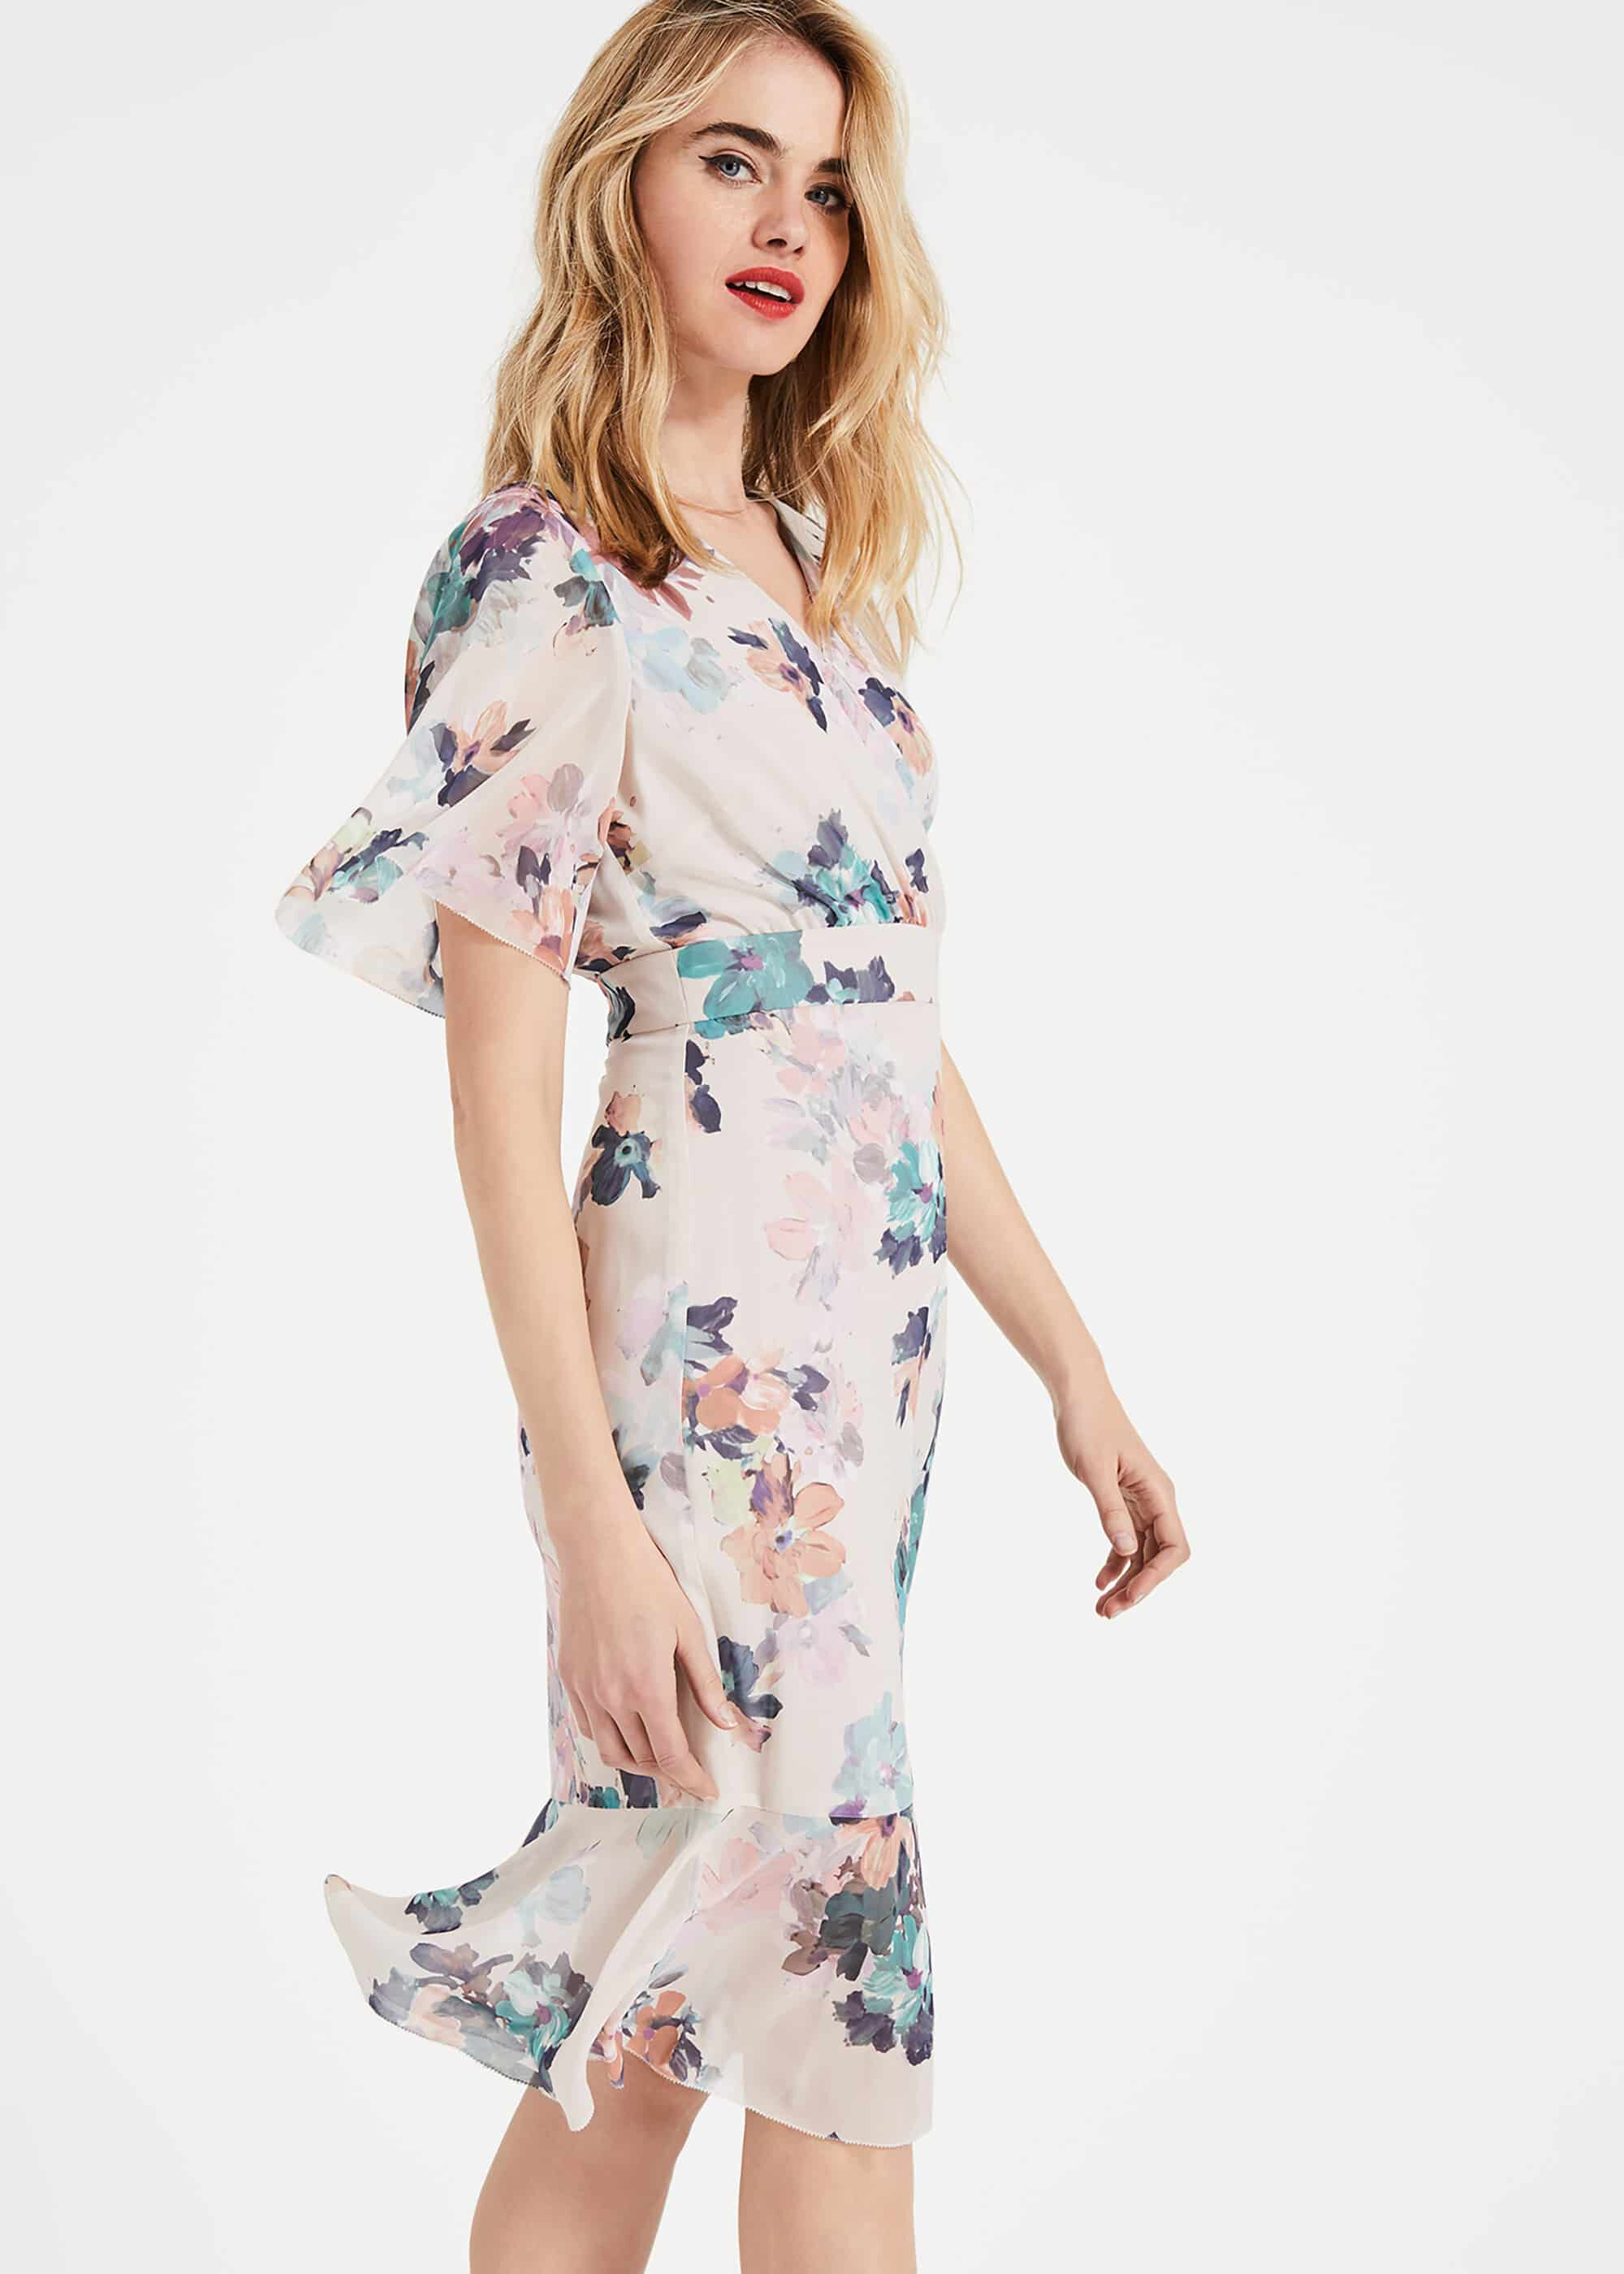 Phase Eight Keely Floral Dress, Cream, Shift